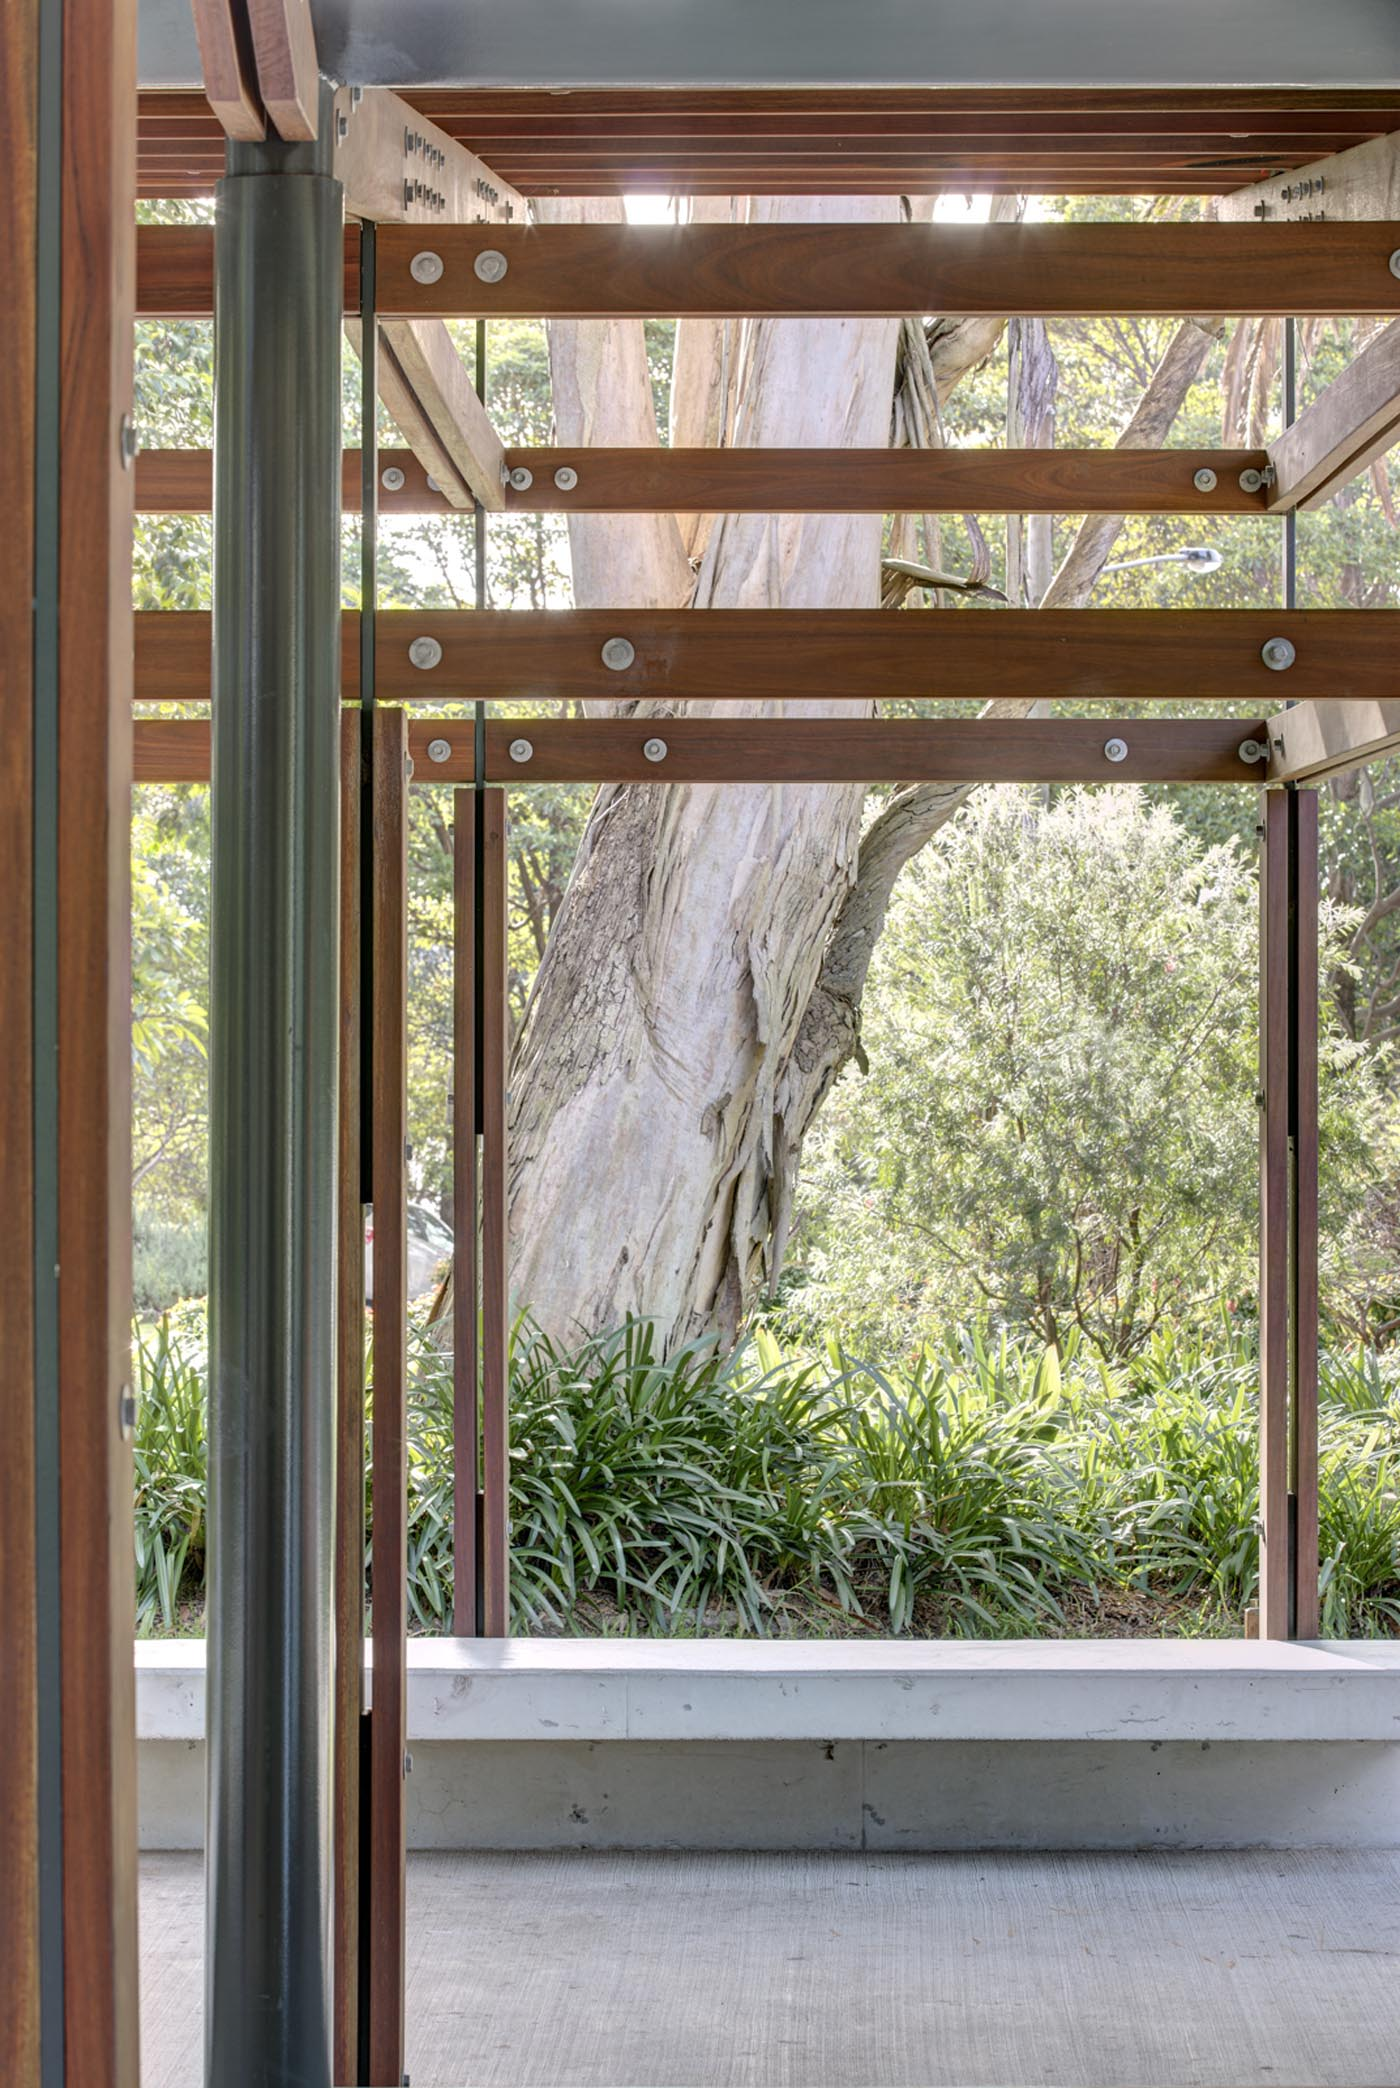 Cabarita Park Conservatory by award winning public architectural firm Sam Crawford Architects. View to giant fig tree.